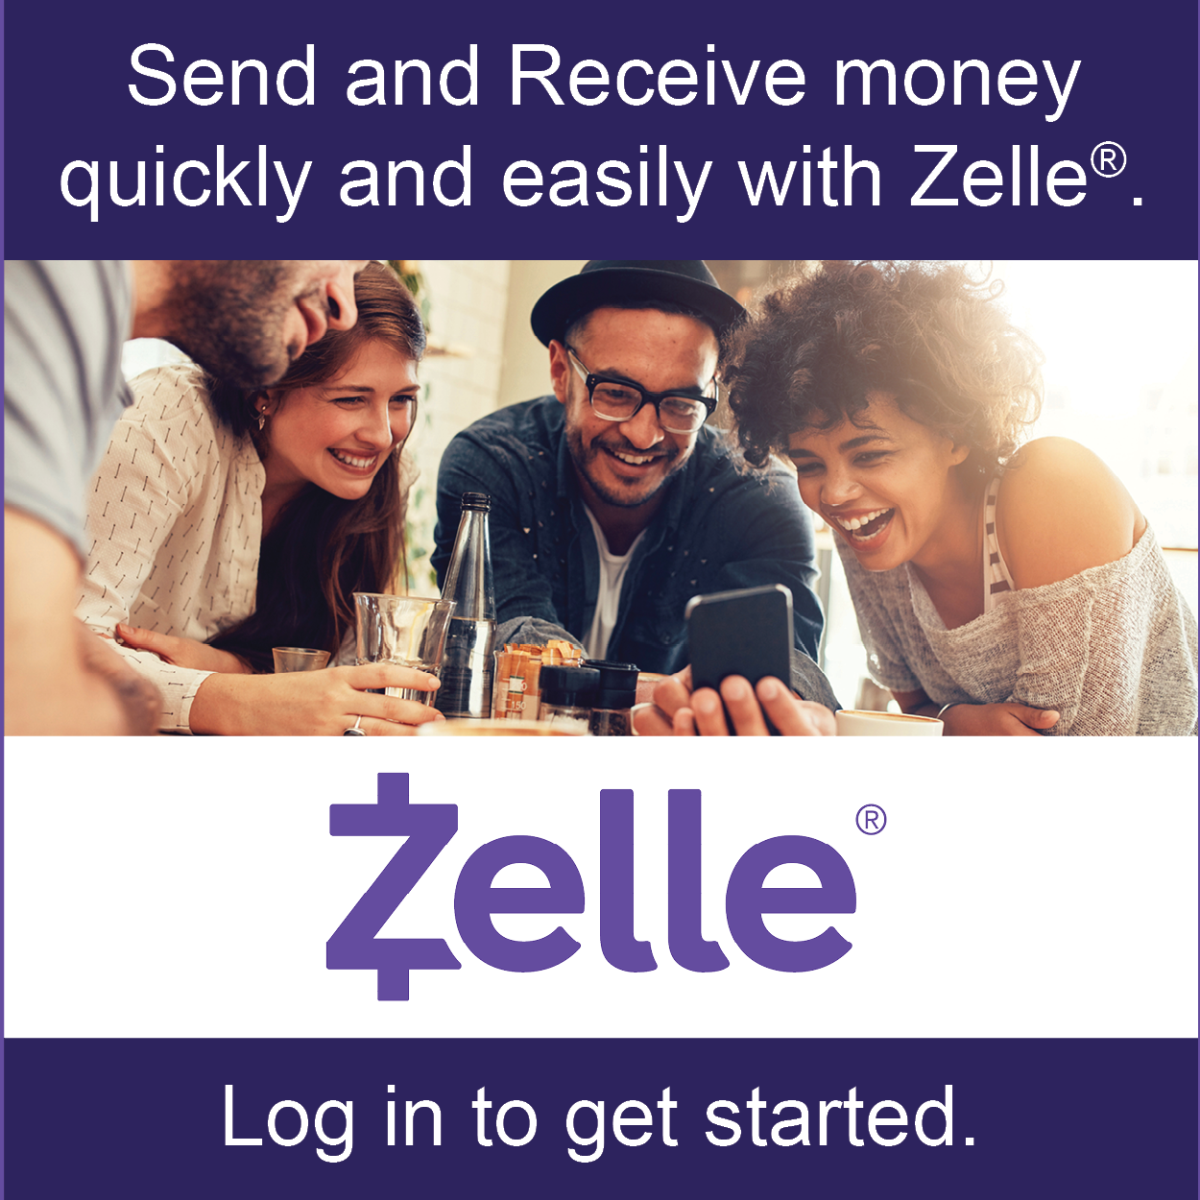 Zelle coming soon